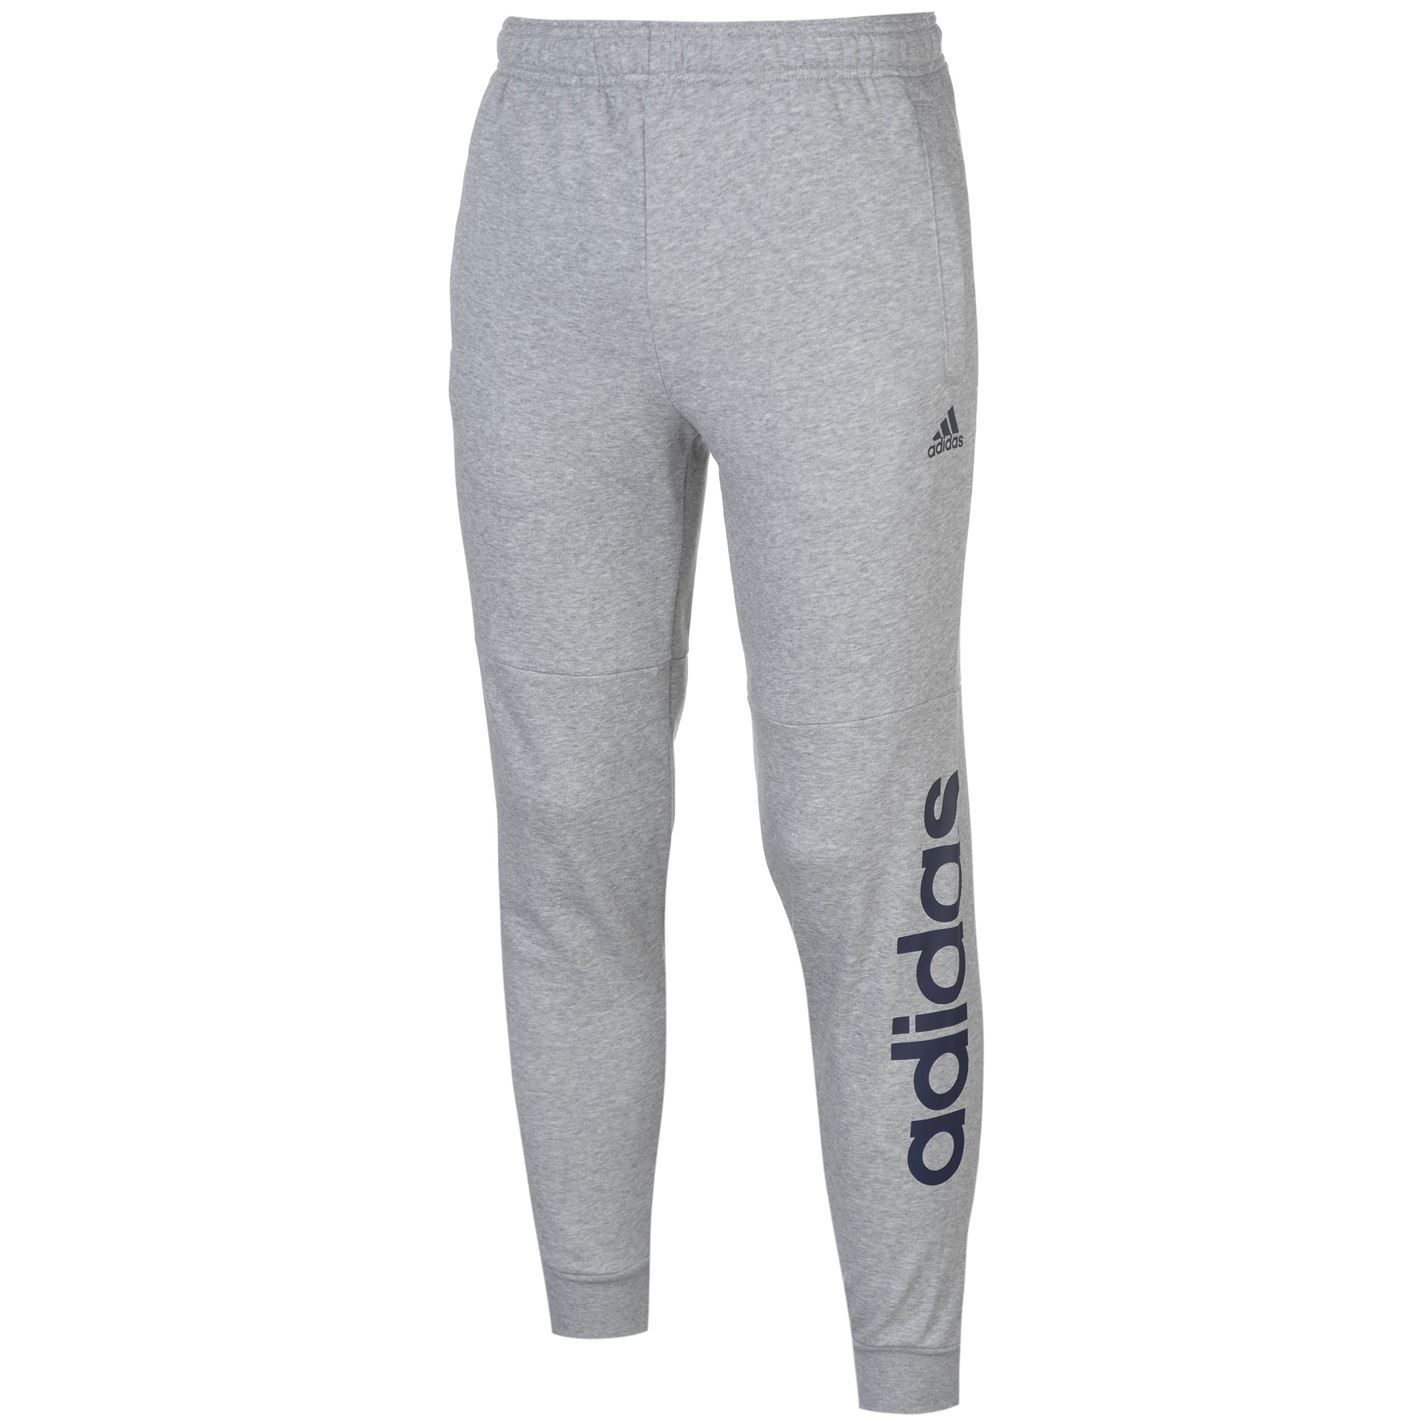 af1426112f65 The Mens adidas Lined Taped Fit Fleece Pants have been designed with a  elasticated waistband with an adjustable inner drawcord for a secure and  comfortable ...